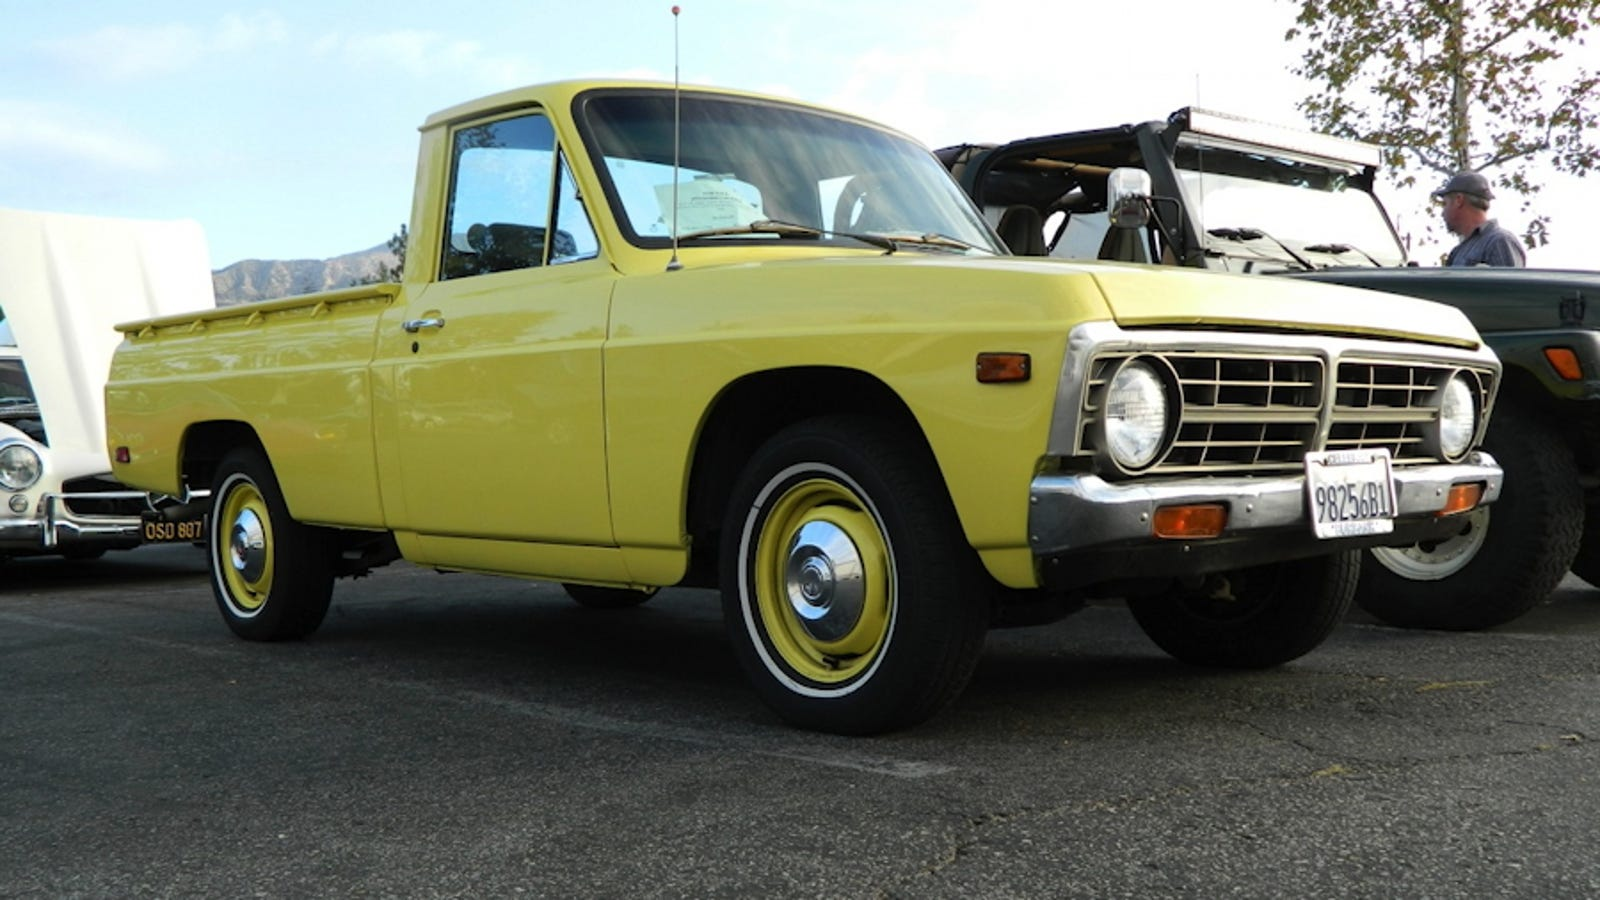 For $6,500, Do You Think This 1974 Ford Courier Will Deliver?